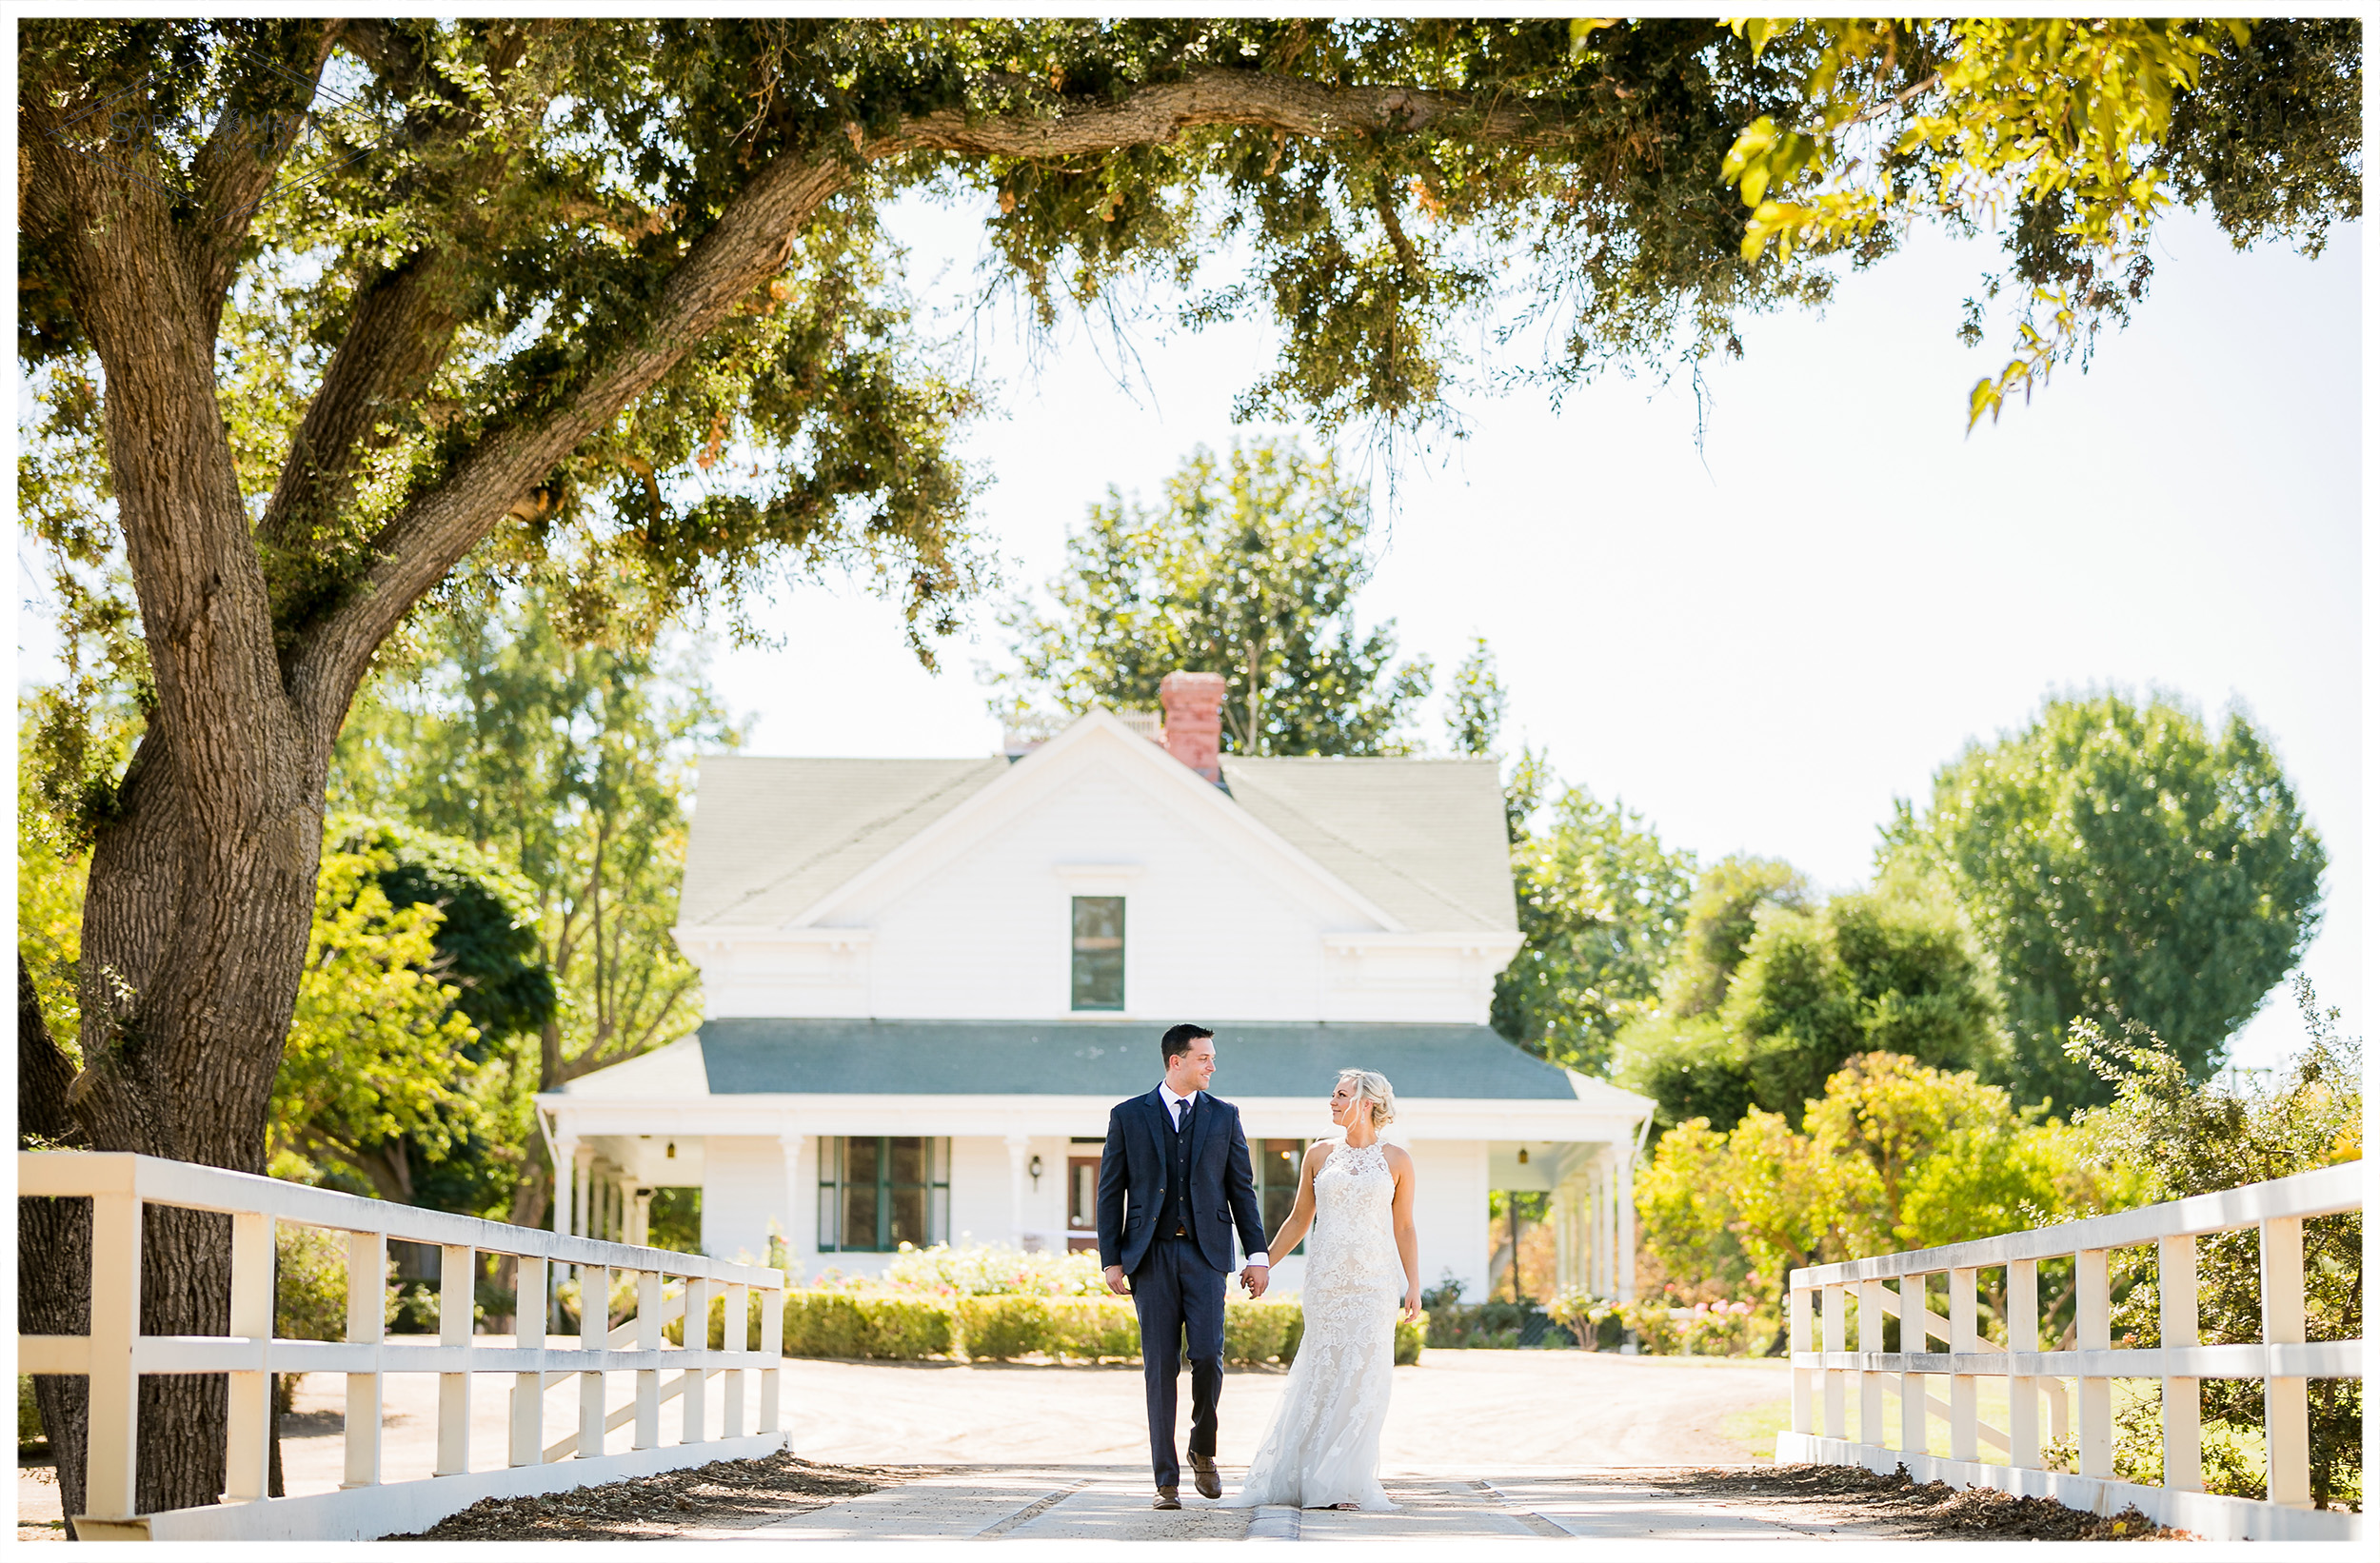 MA-Chandler-Ranch-Paso-Robles-Wedding-Photography-35.jpg